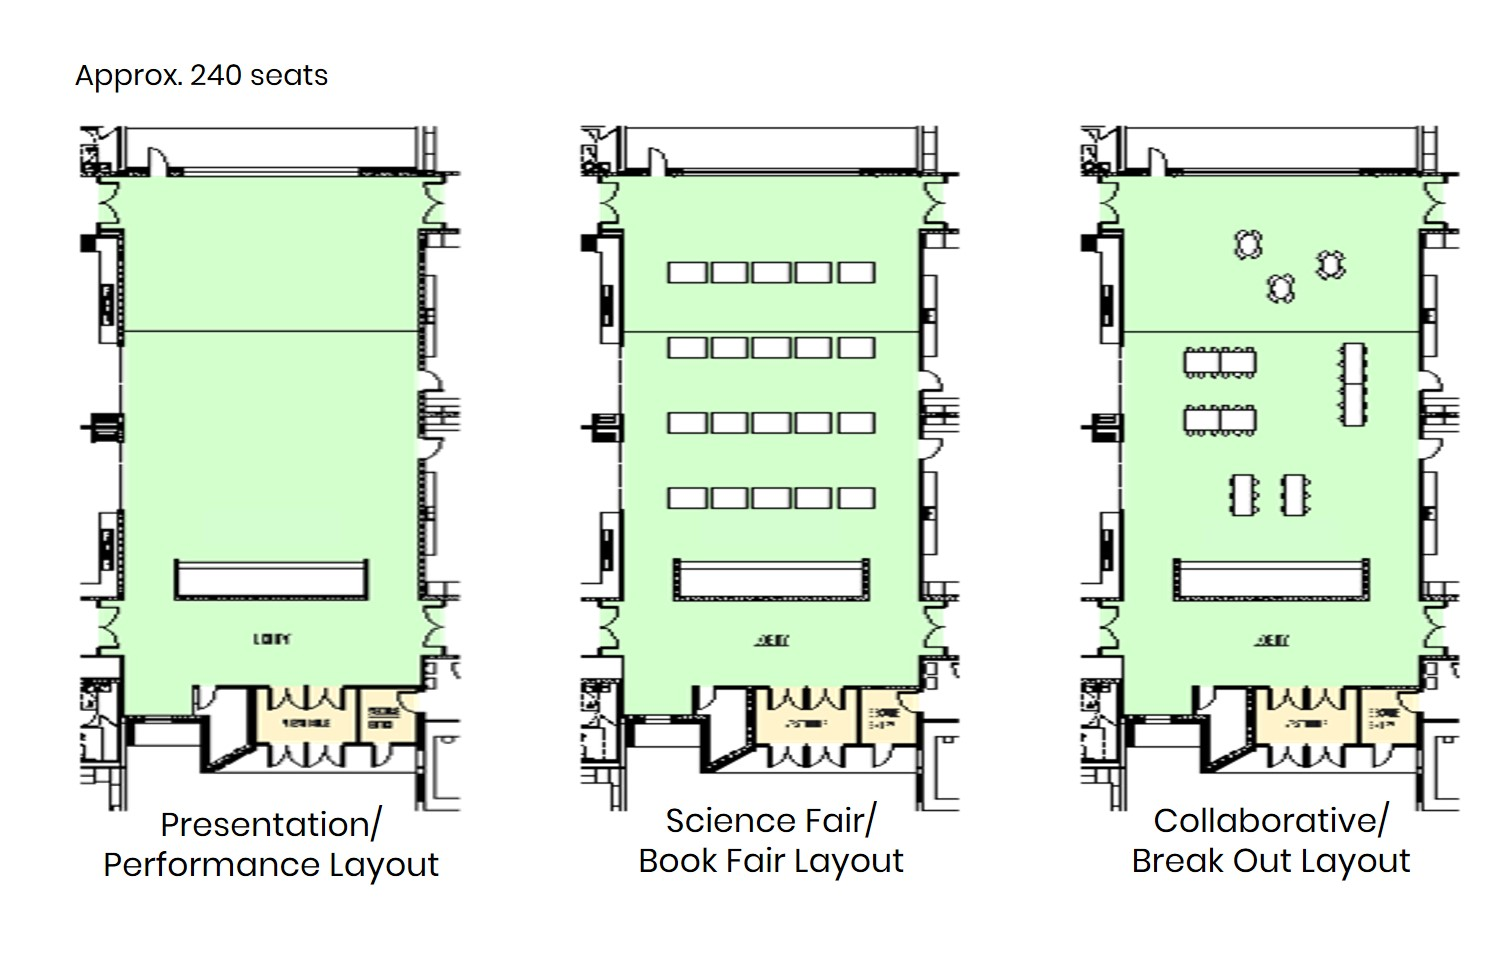 Woodland: Layout options for various uses of the collaborative commons area.